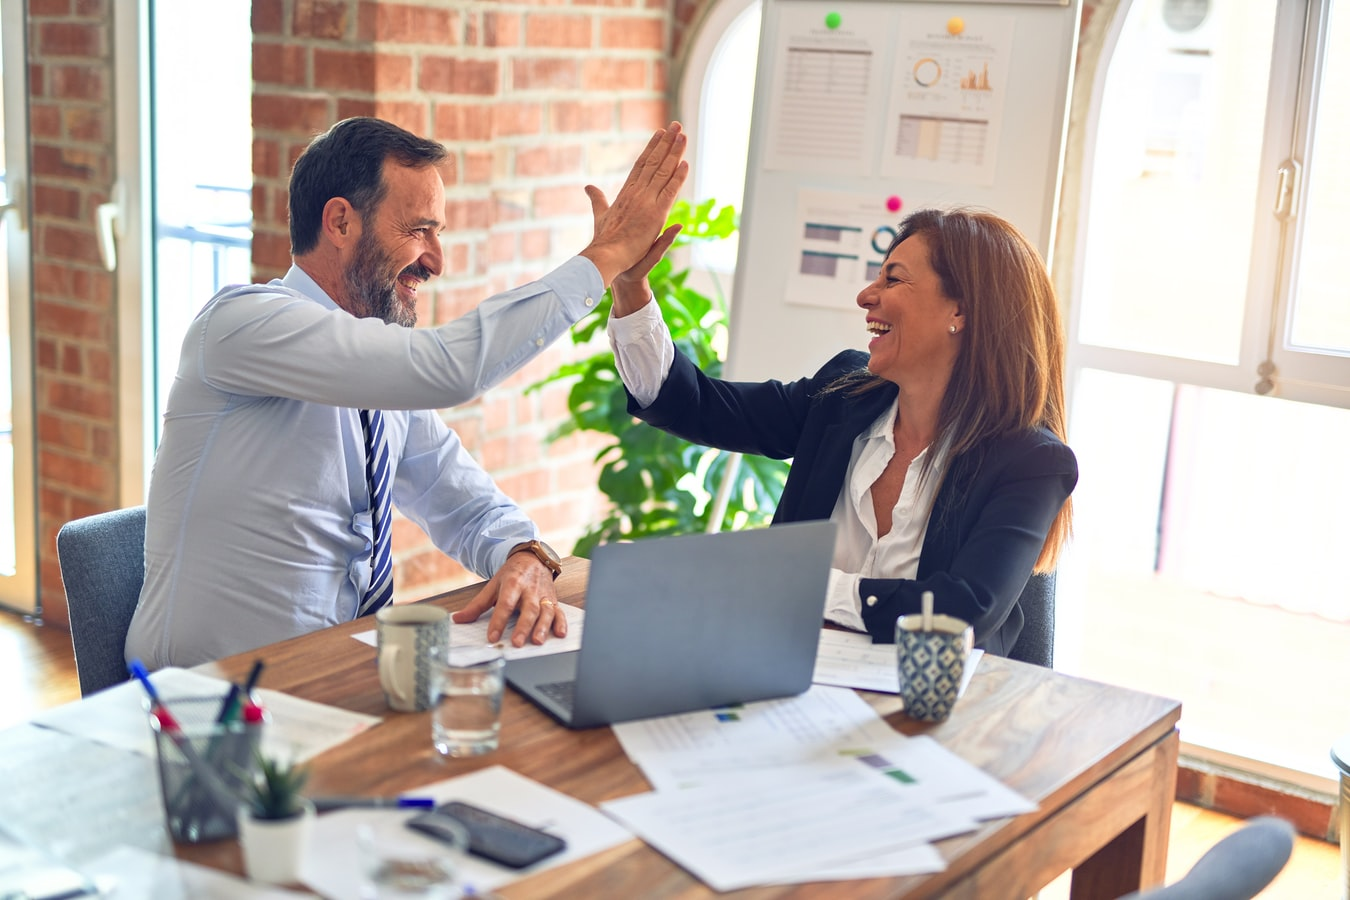 The Two Components of Employee Brand Engagement